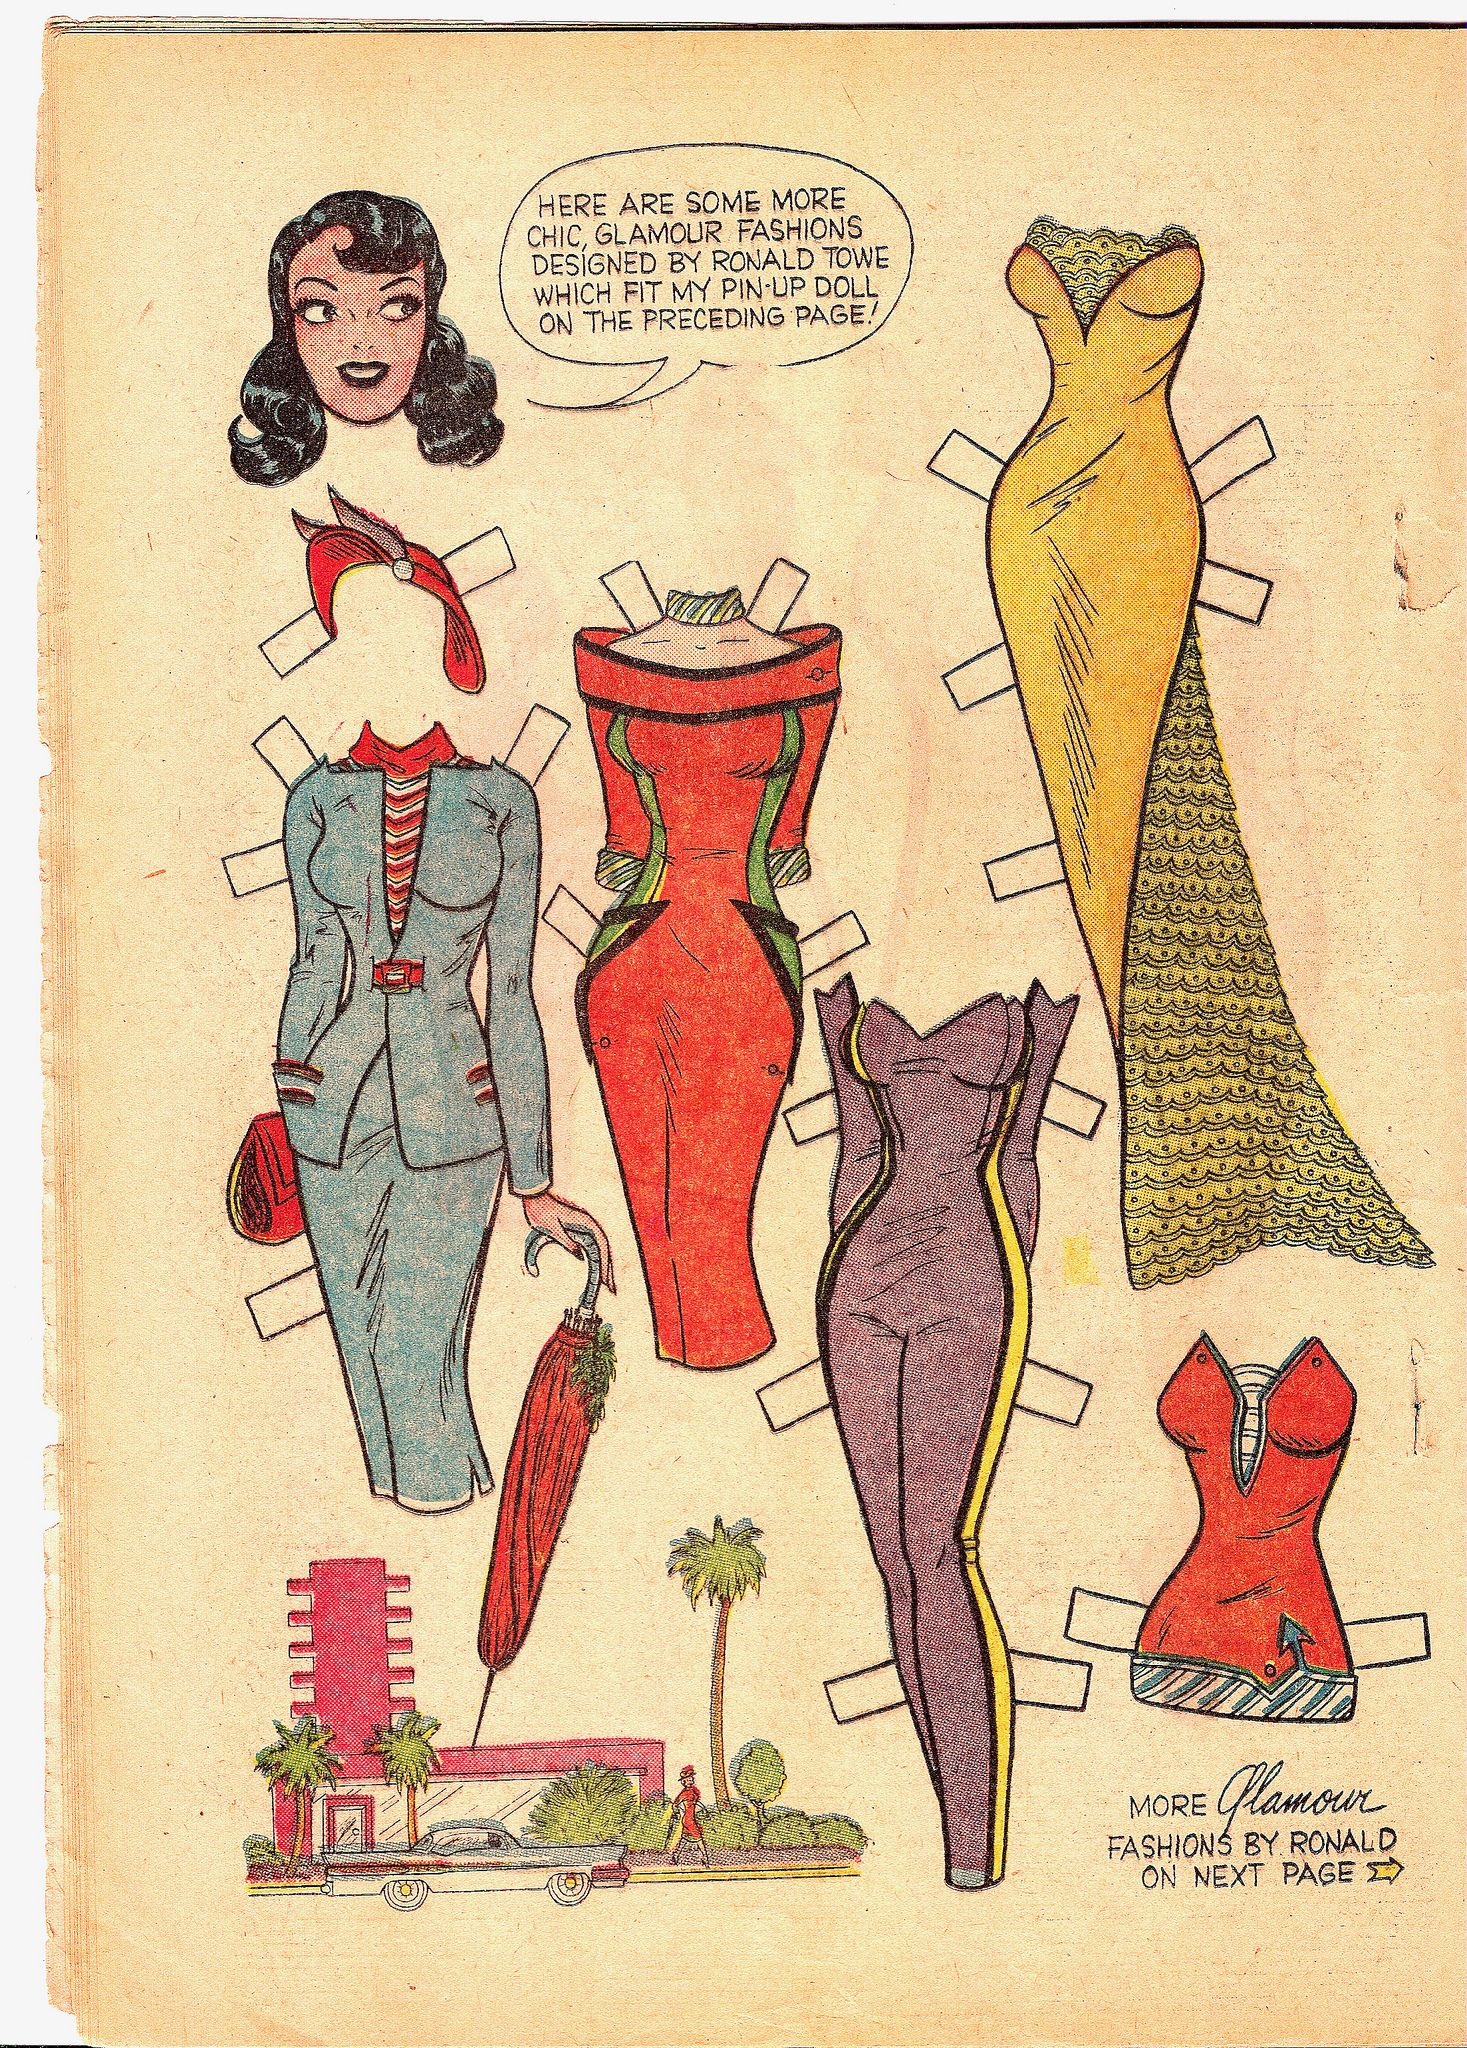 Pin by Jessica Abend on Katy Keene   Paper dolls clothing, Paper ...